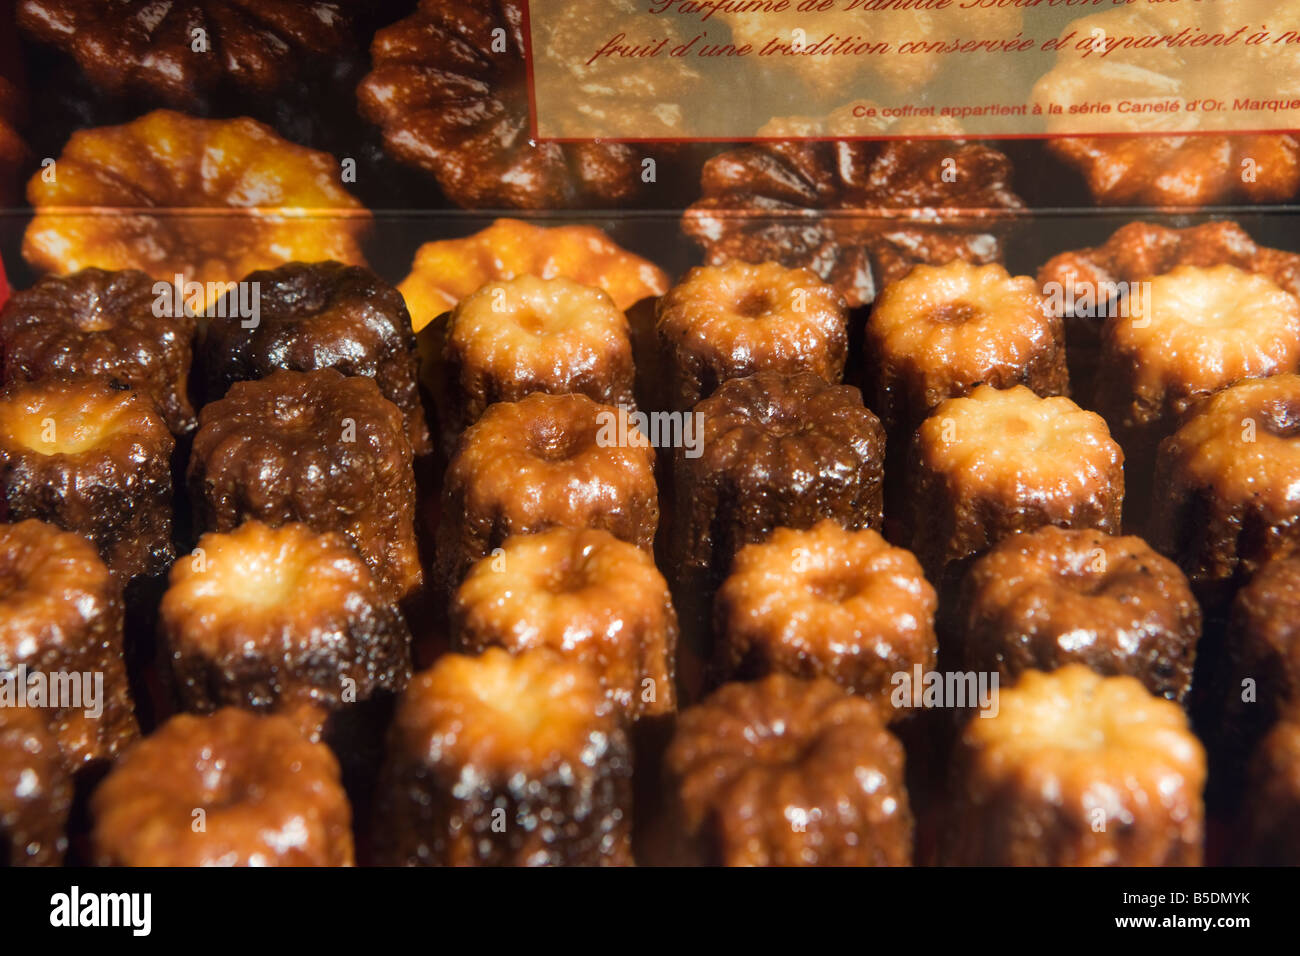 Caneles bordeaux france french food pastry cuisine stock for Aquitaine france cuisine